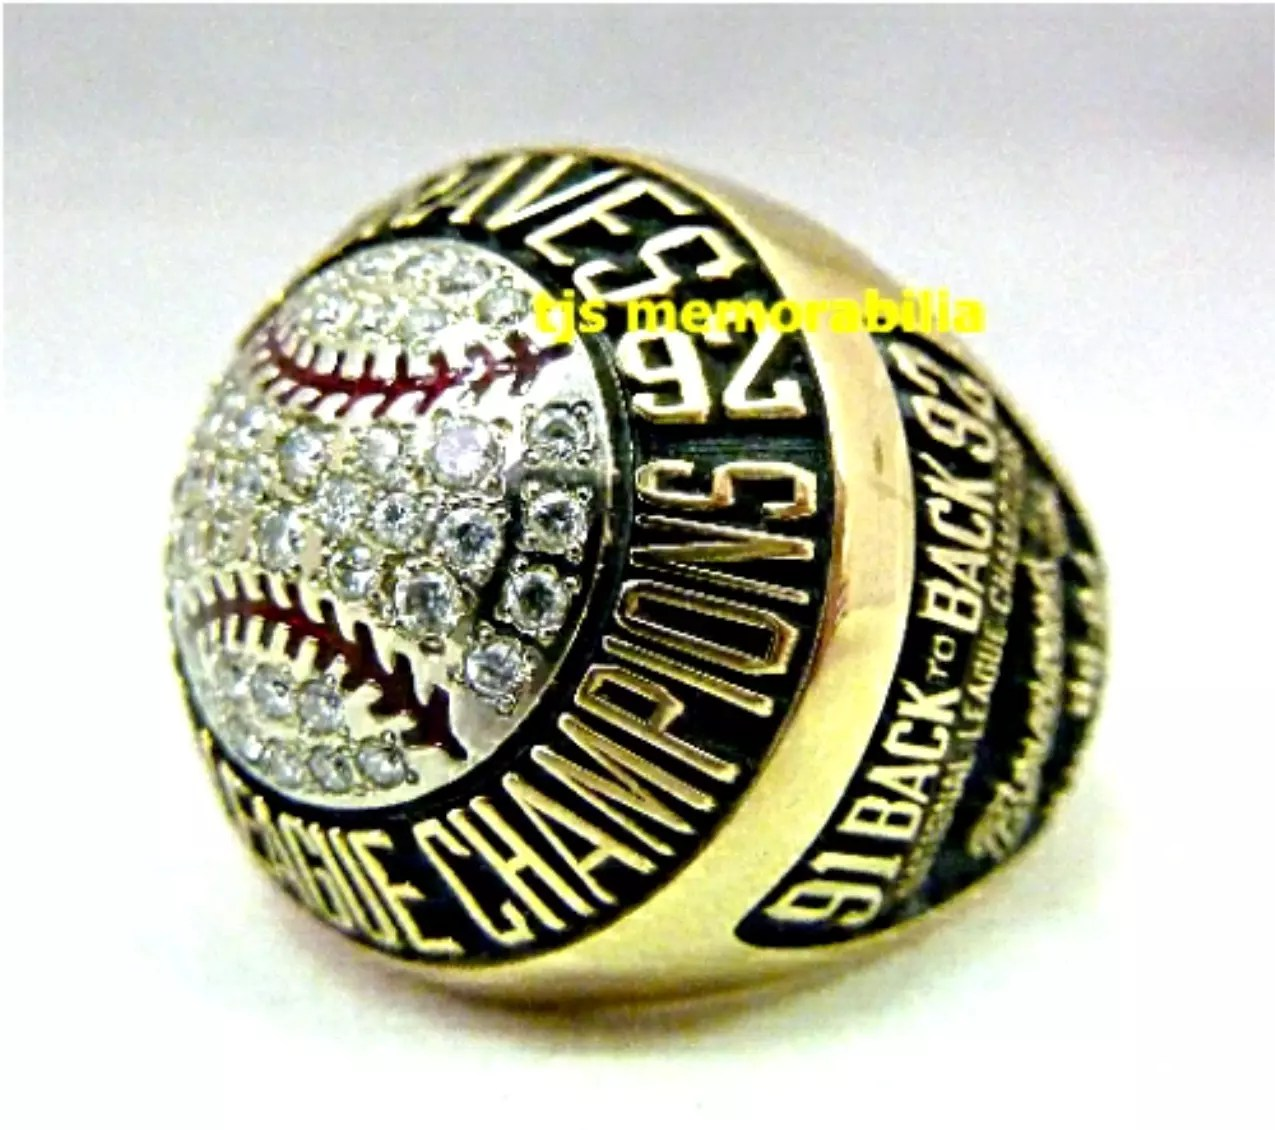 1992 ATLANTA BRAVES NATIONAL LEAGUE CHAMPIONSHIP RING